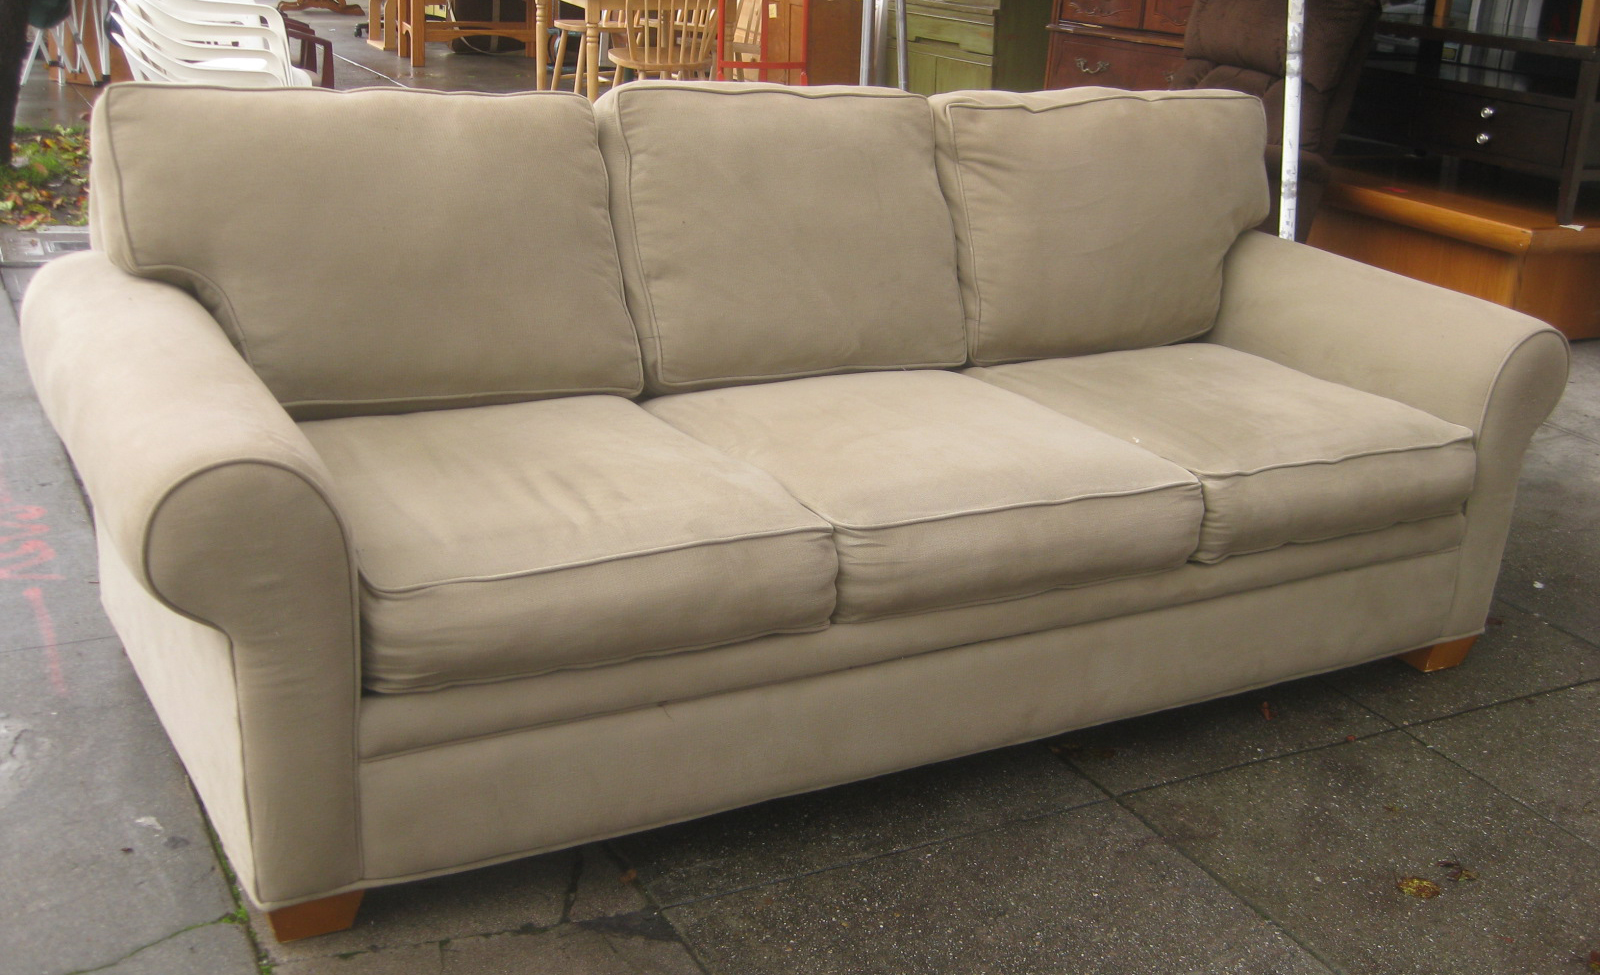 Sofas Beige Uhuru Furniture And Collectibles Sold Beige Sofa 90